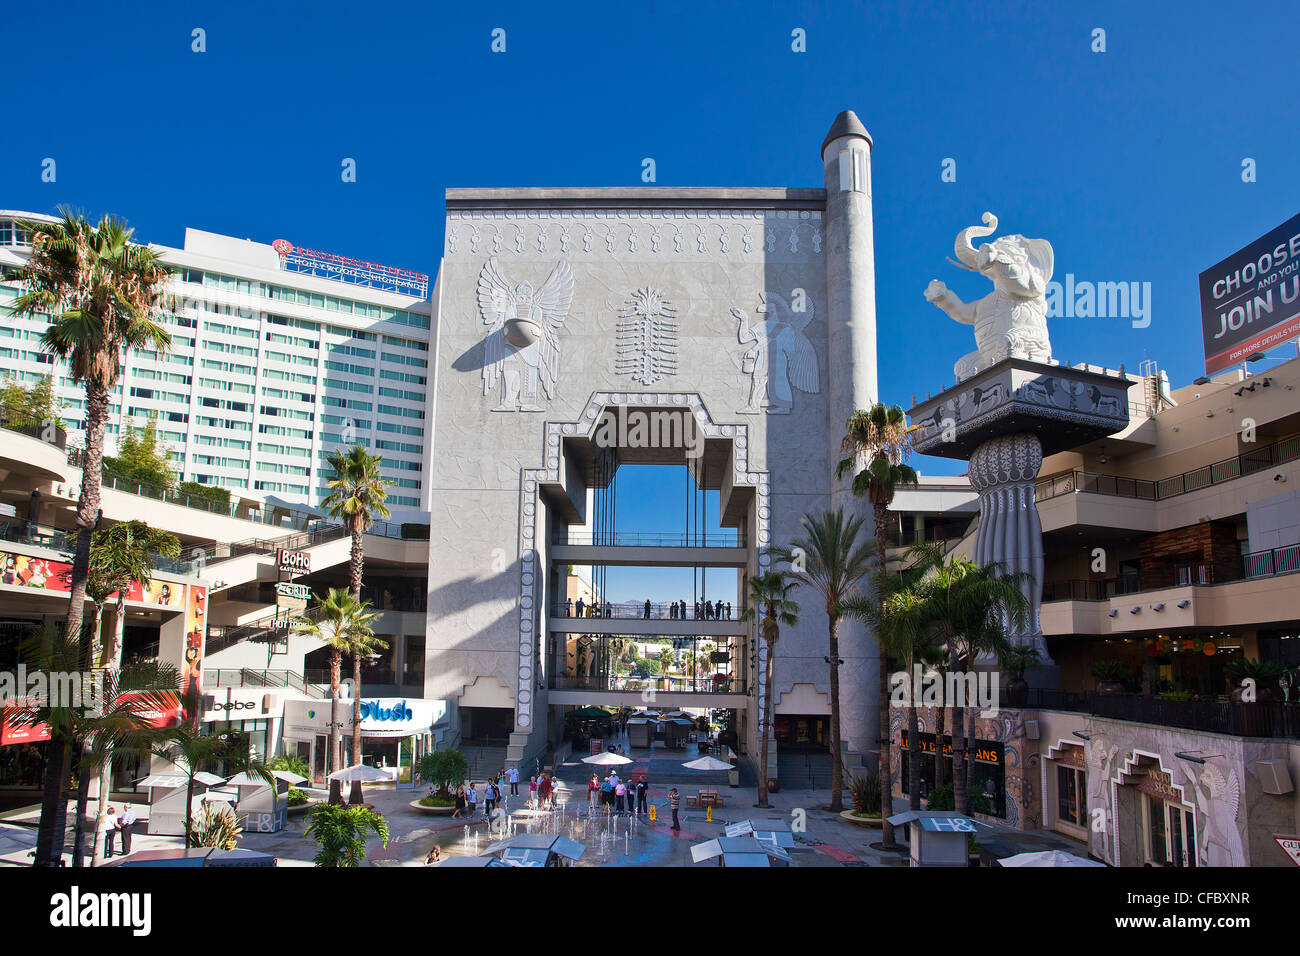 Los angeles ca united states pictures citiestips com - Usa United States America California Los Angeles City Stock Photo